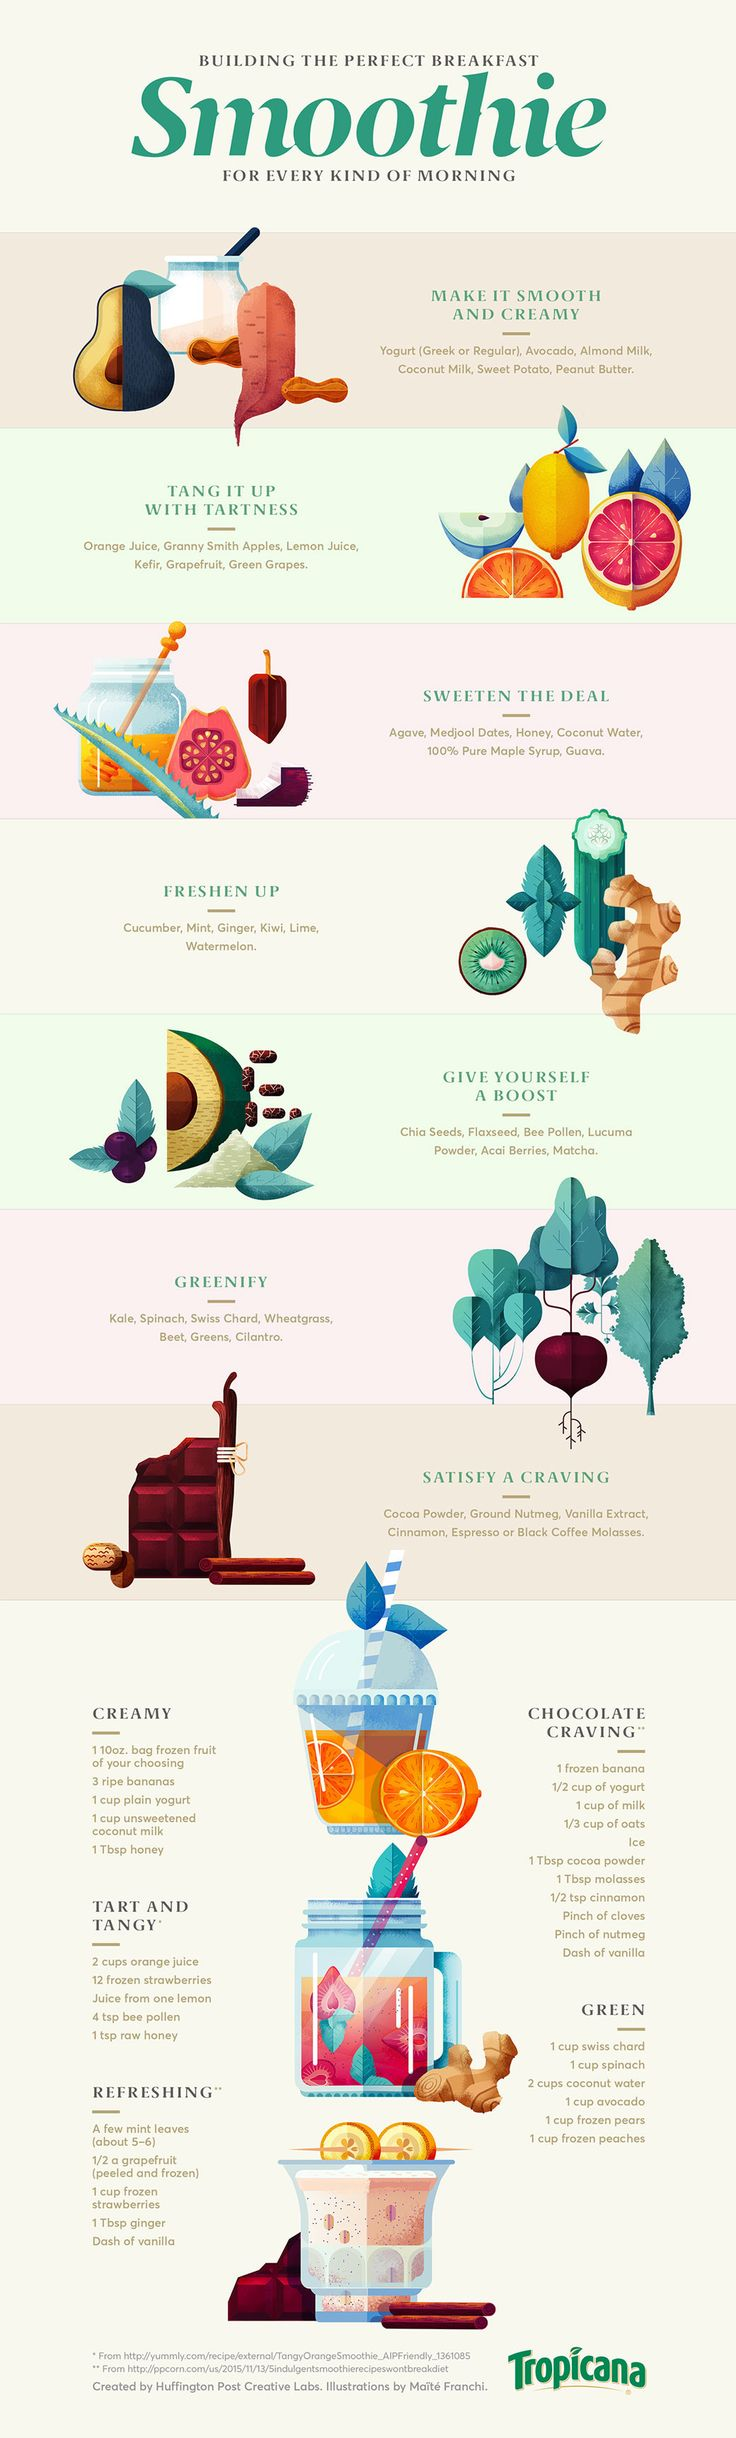 HuffPost x Smoothie on Behance